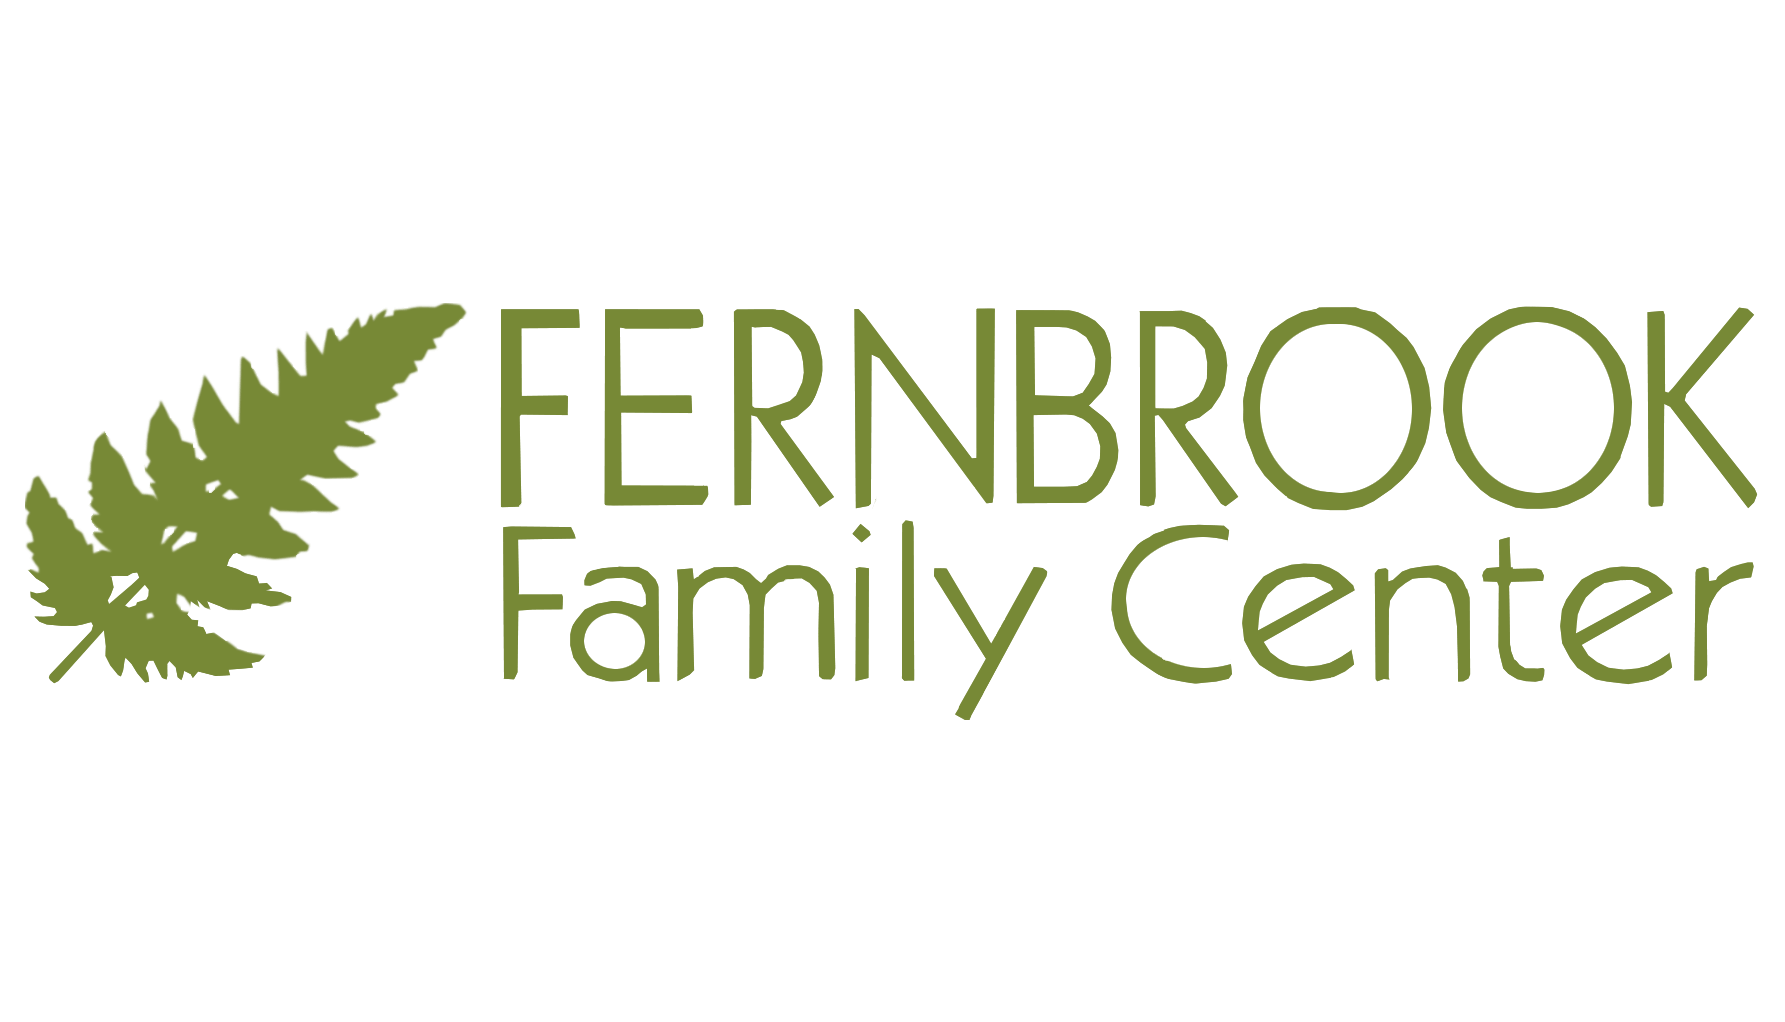 Video Production family services Fernbrook Family Center